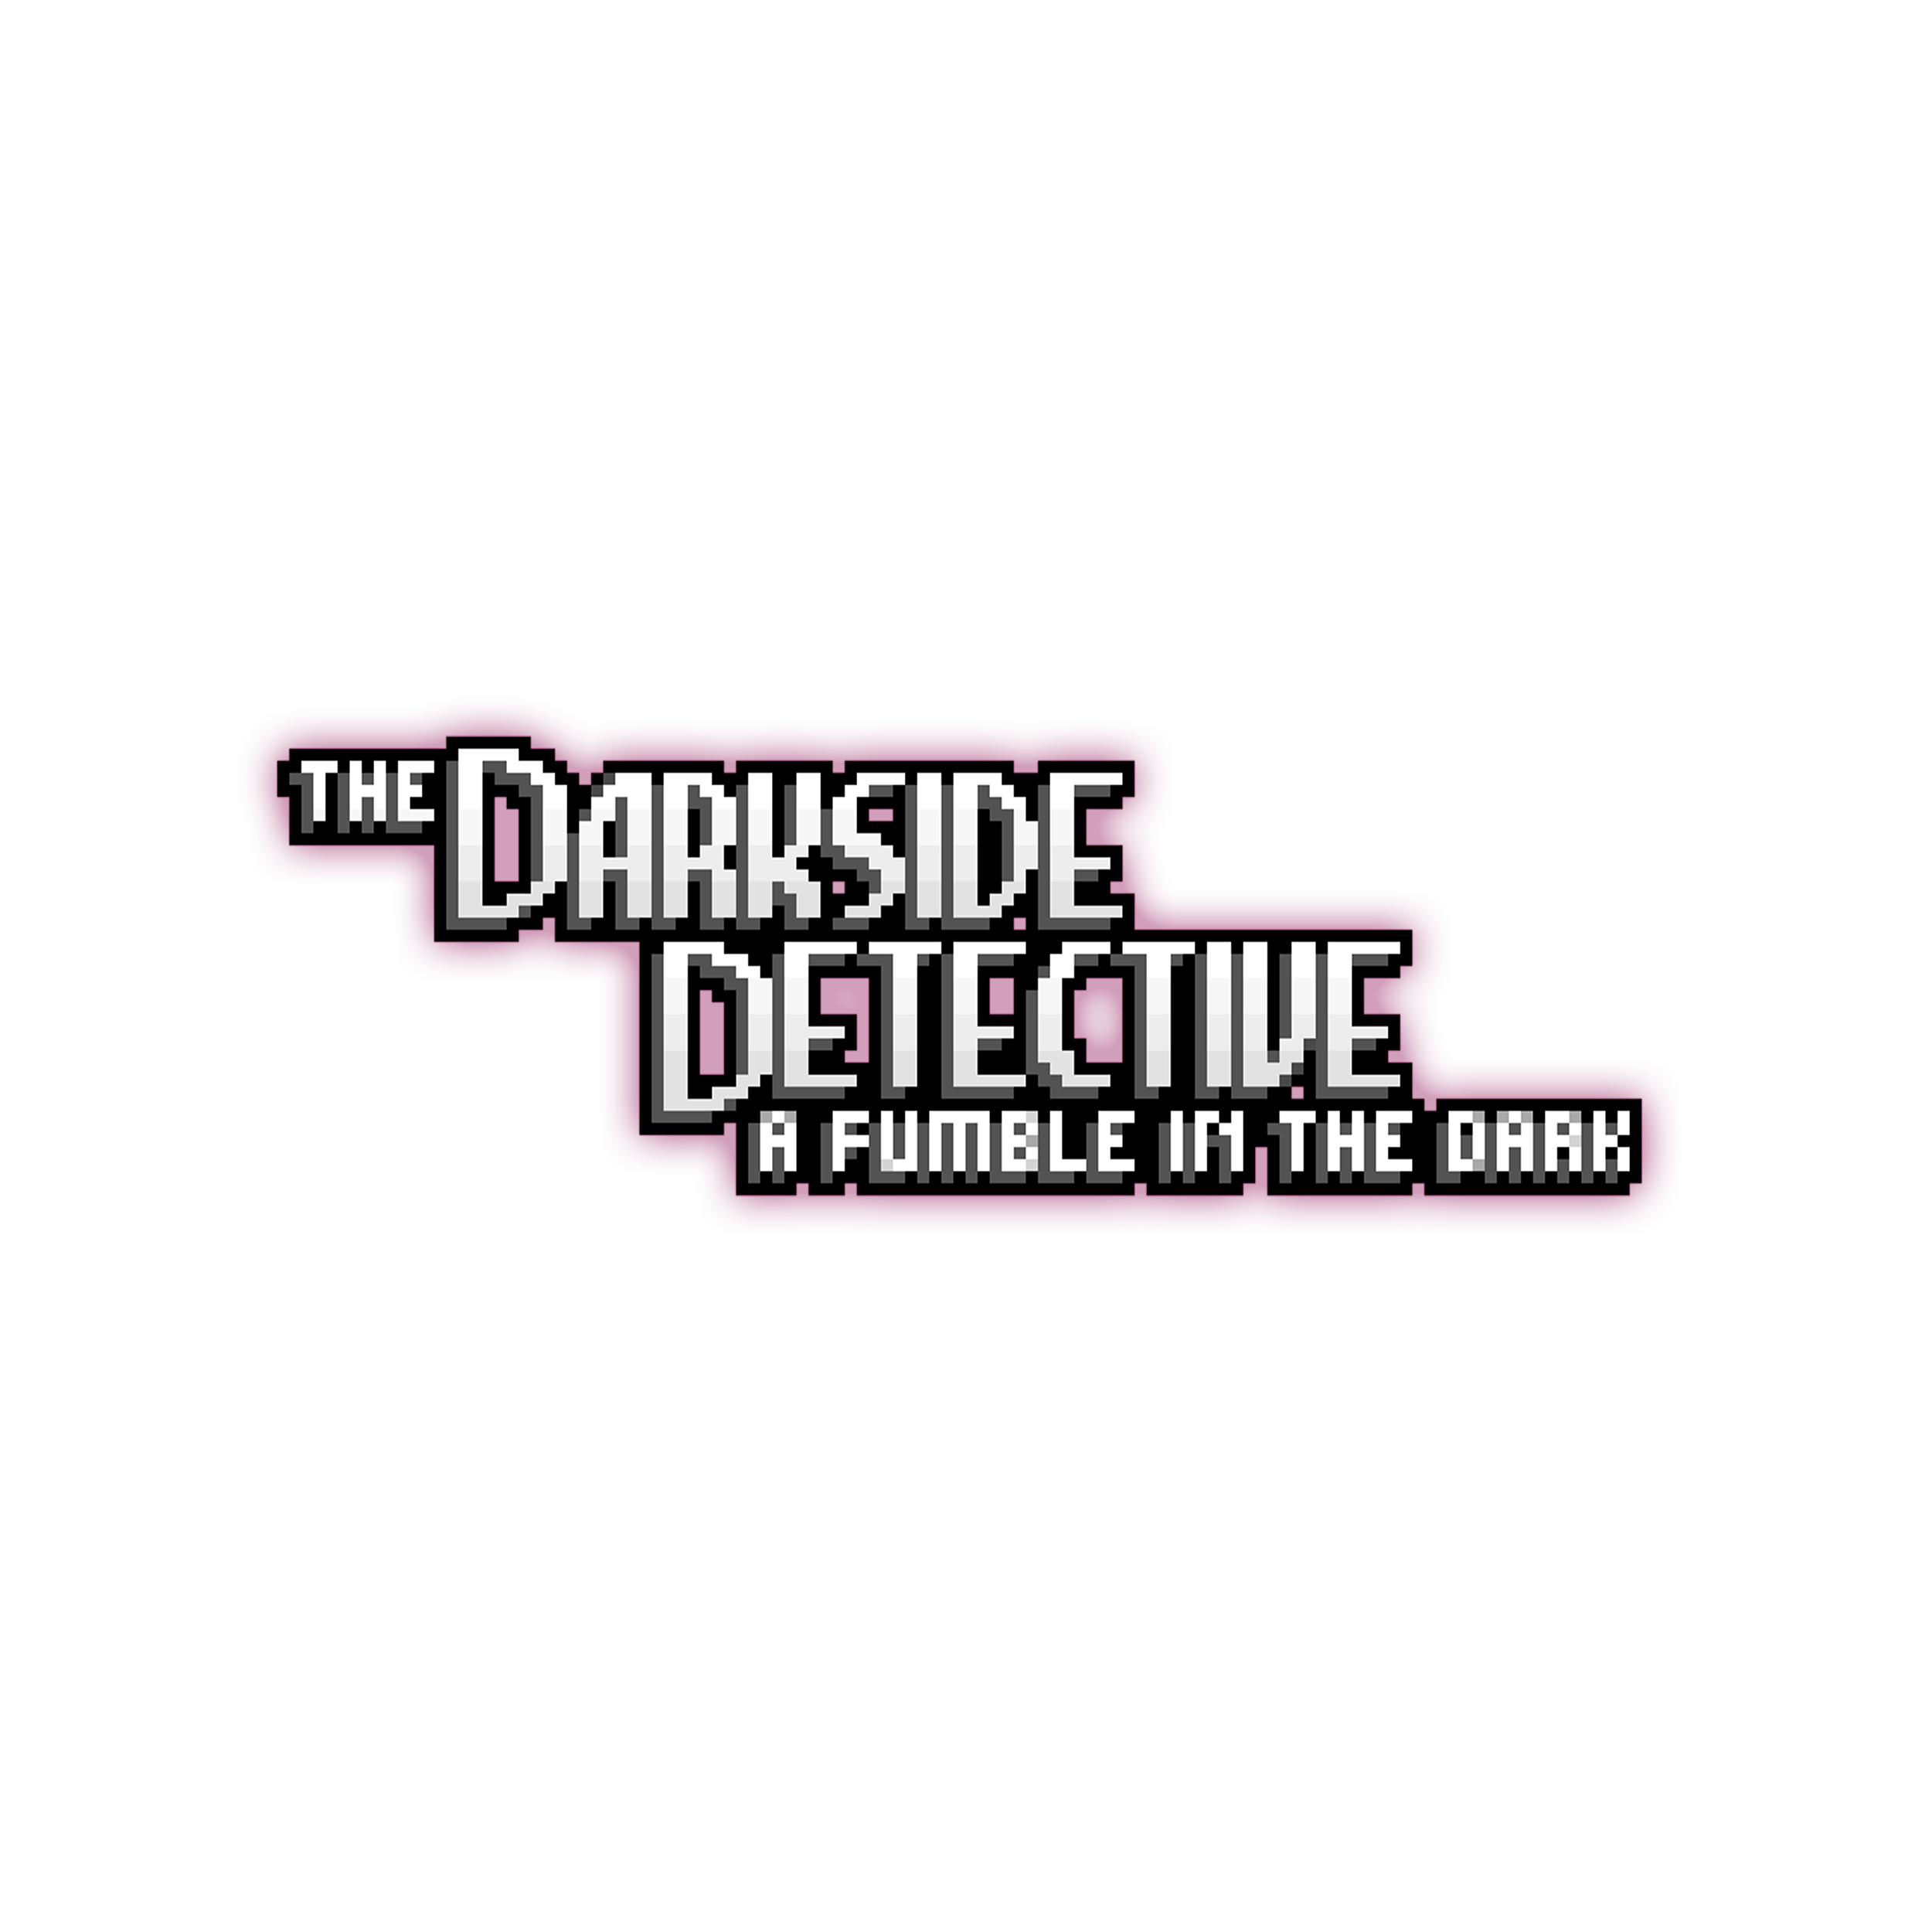 The Darkside Detective: A Fumble in the Dark logo